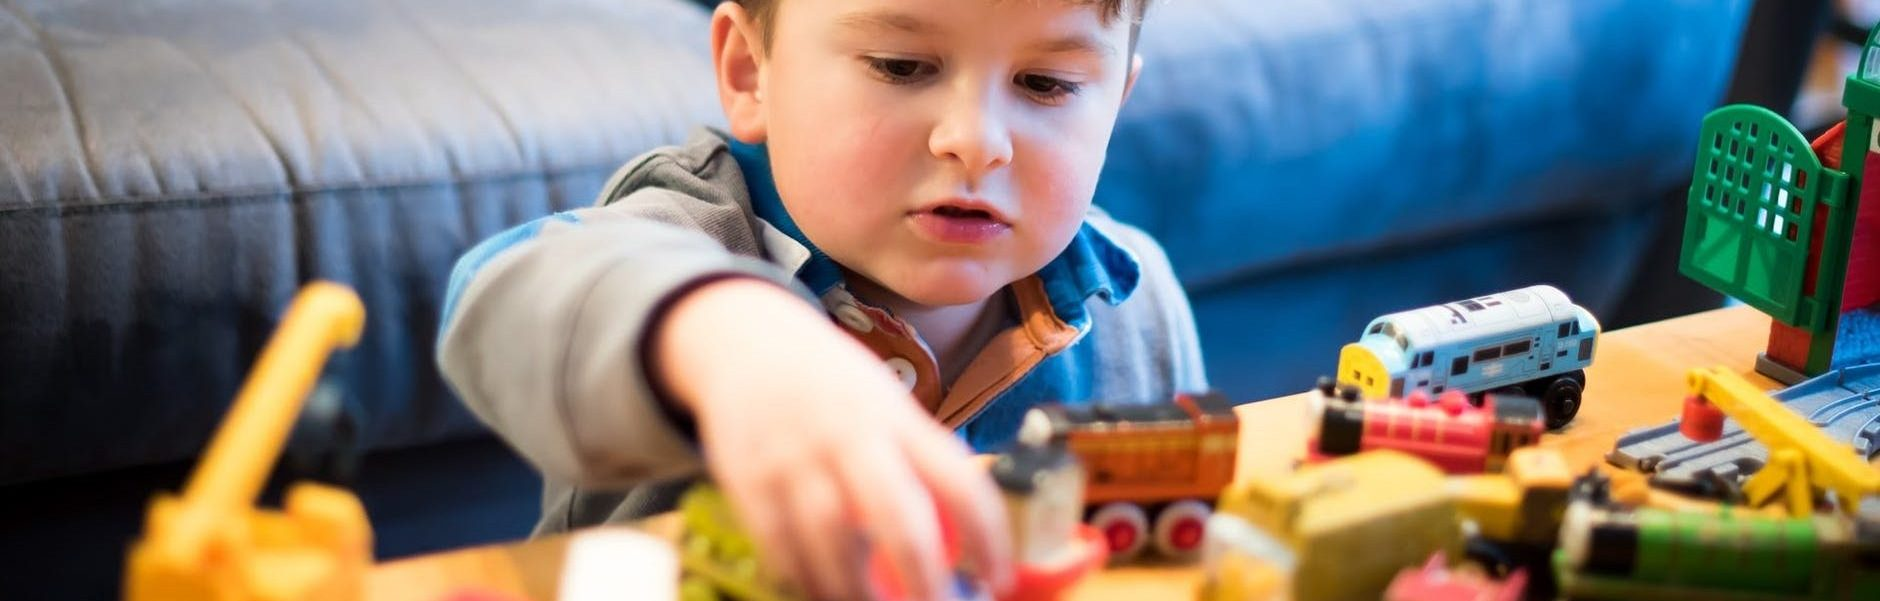 boy plays with toy trains